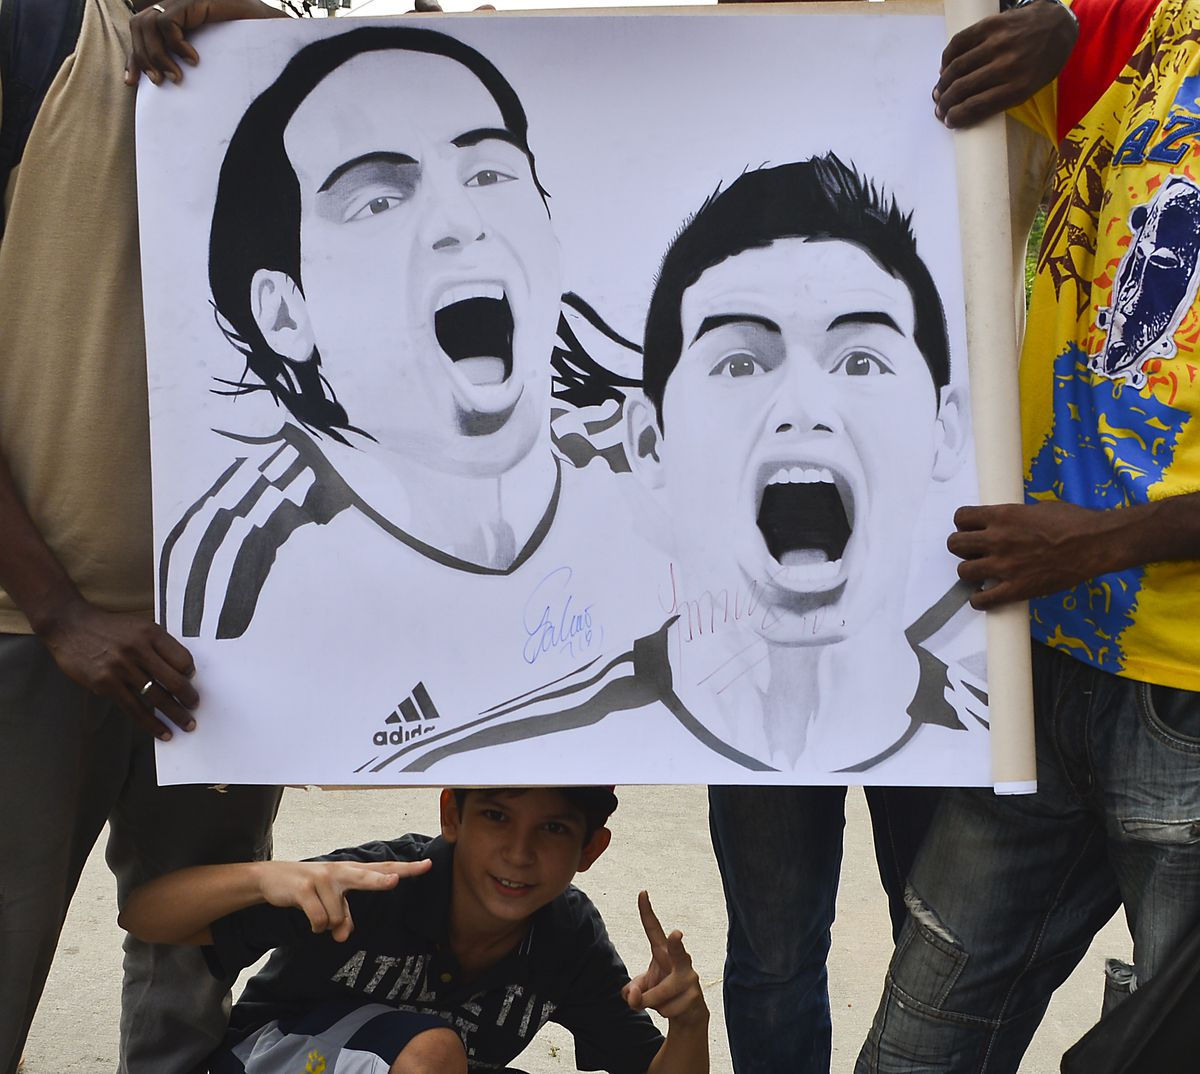 Colombia's national football team fans show a drawing of players Radamel Falcao (L) and James Rodriguez before a training session in Barranquilla, Colombia, on October 9, 2013. Colombia will face Chile in a FIFA World Cup Brazil 2014 qualifier match on September 11.